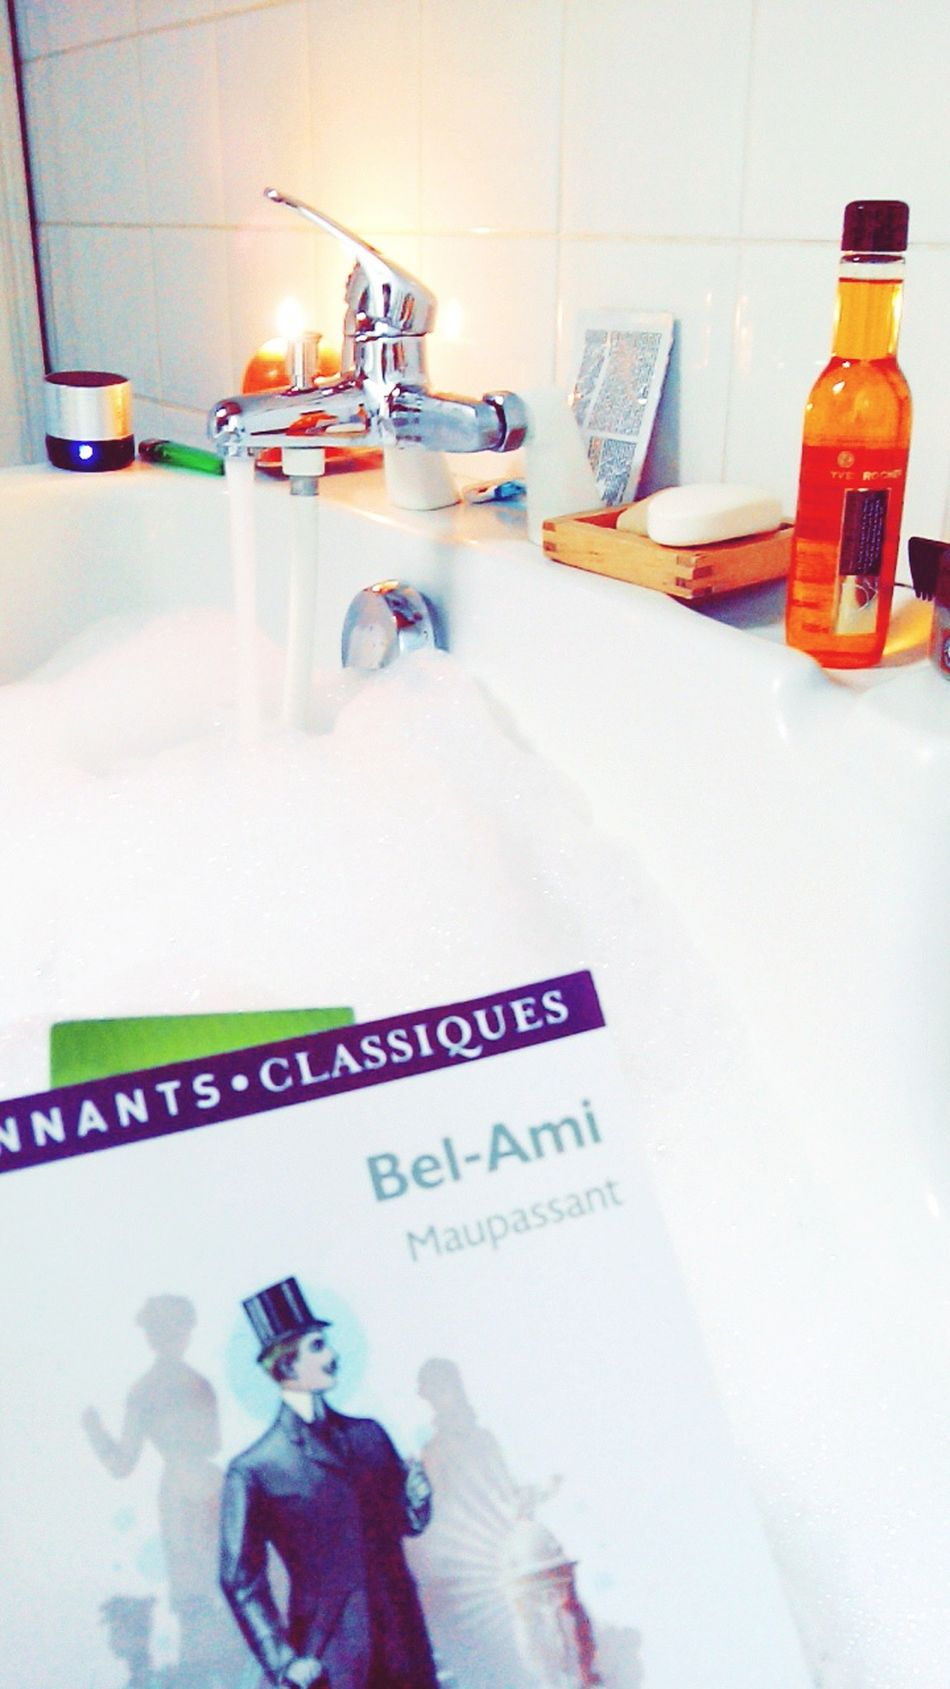 Bain Moussant Lecture Bel Ami Maupassant  Check This Out That's Me Relaxing